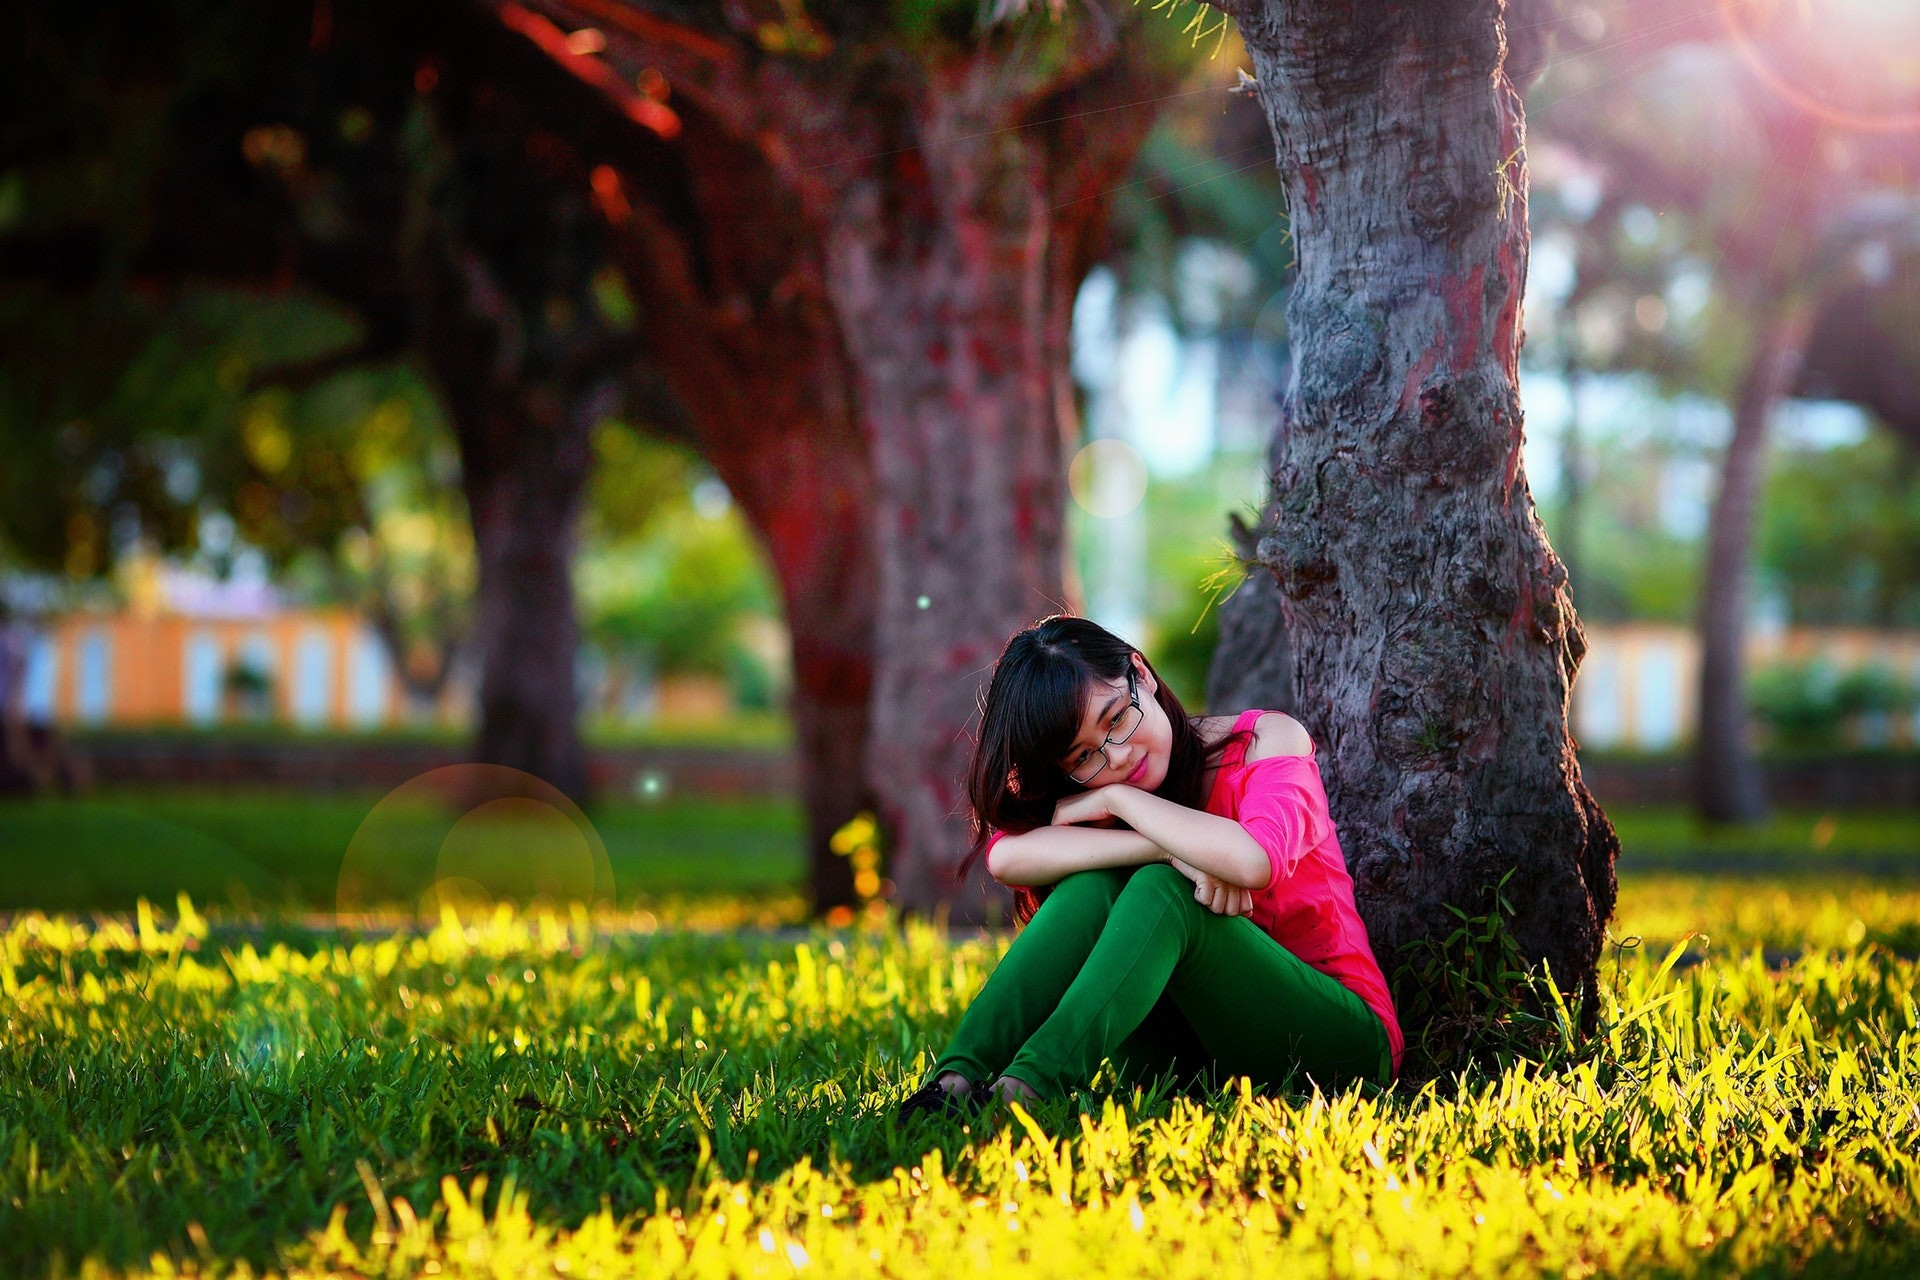 sweet love wallpaper download,people in nature,photograph,nature,grass,green